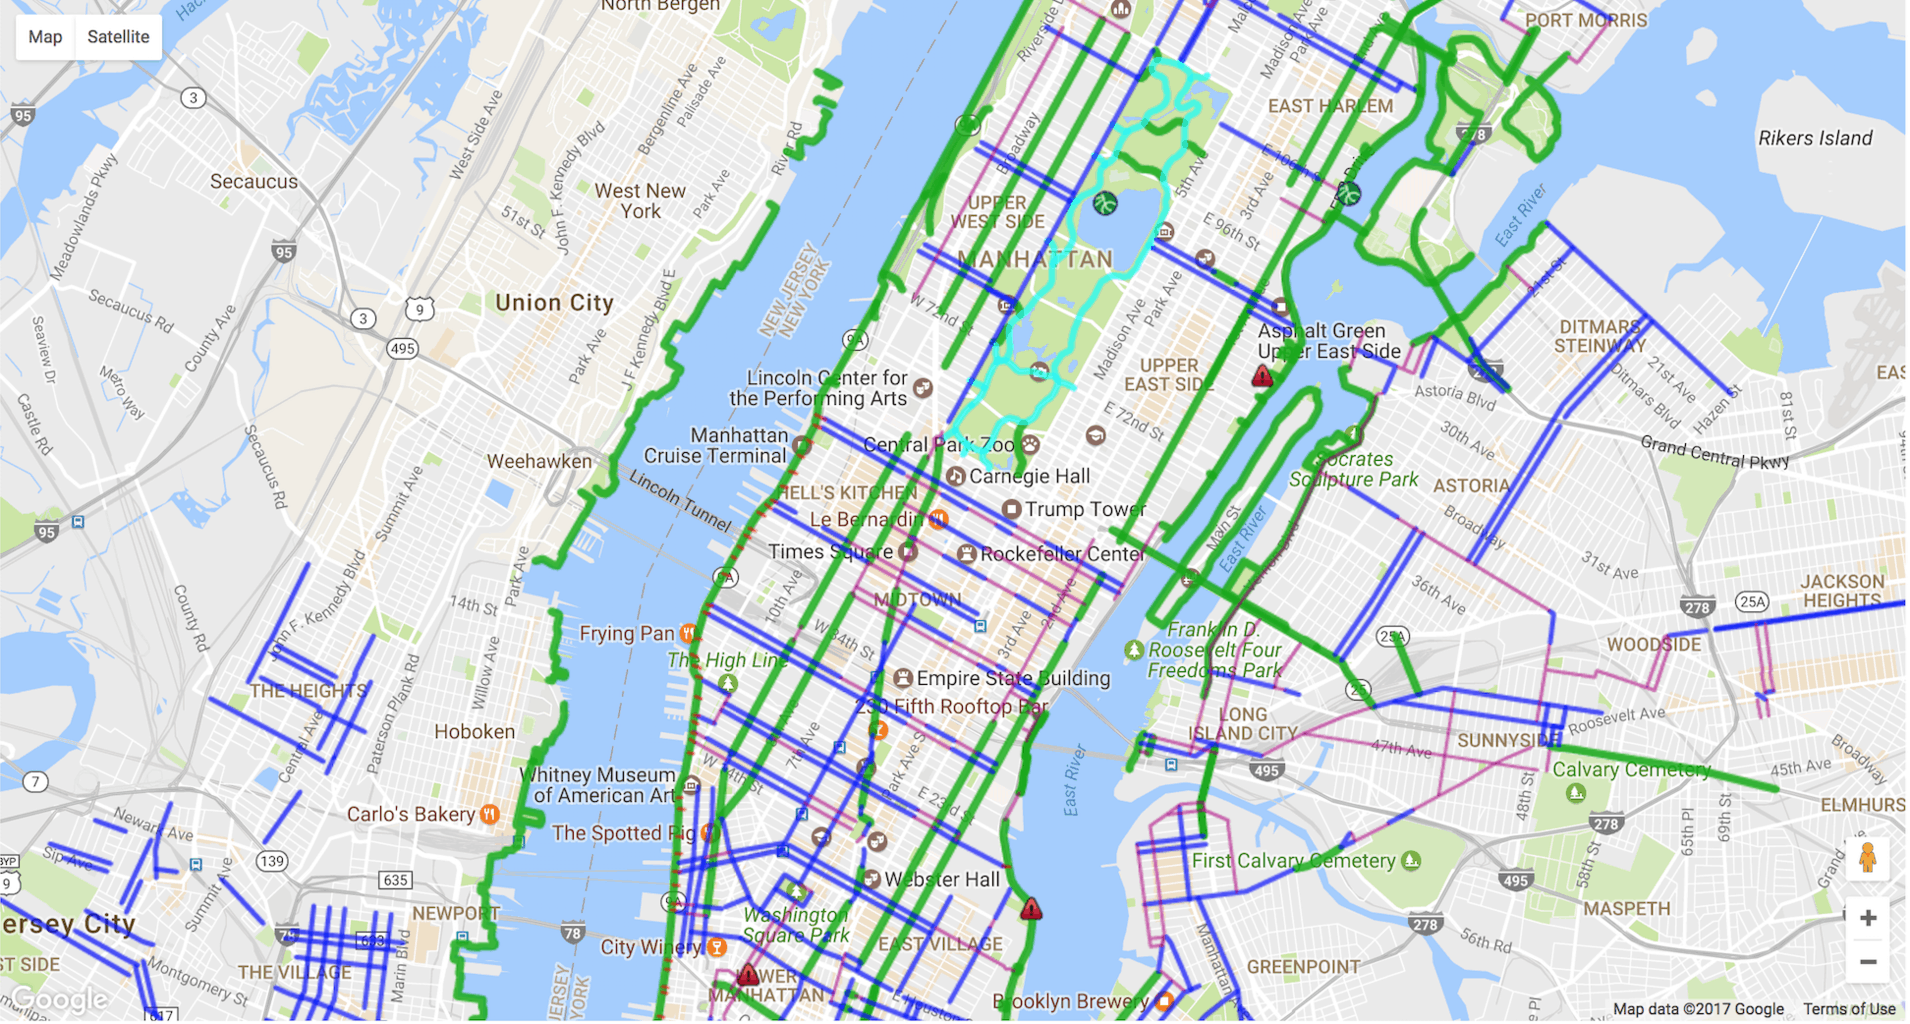 Bike New York Map.The 8 Best Bike Maps For New Yorkers Offmetro Ny